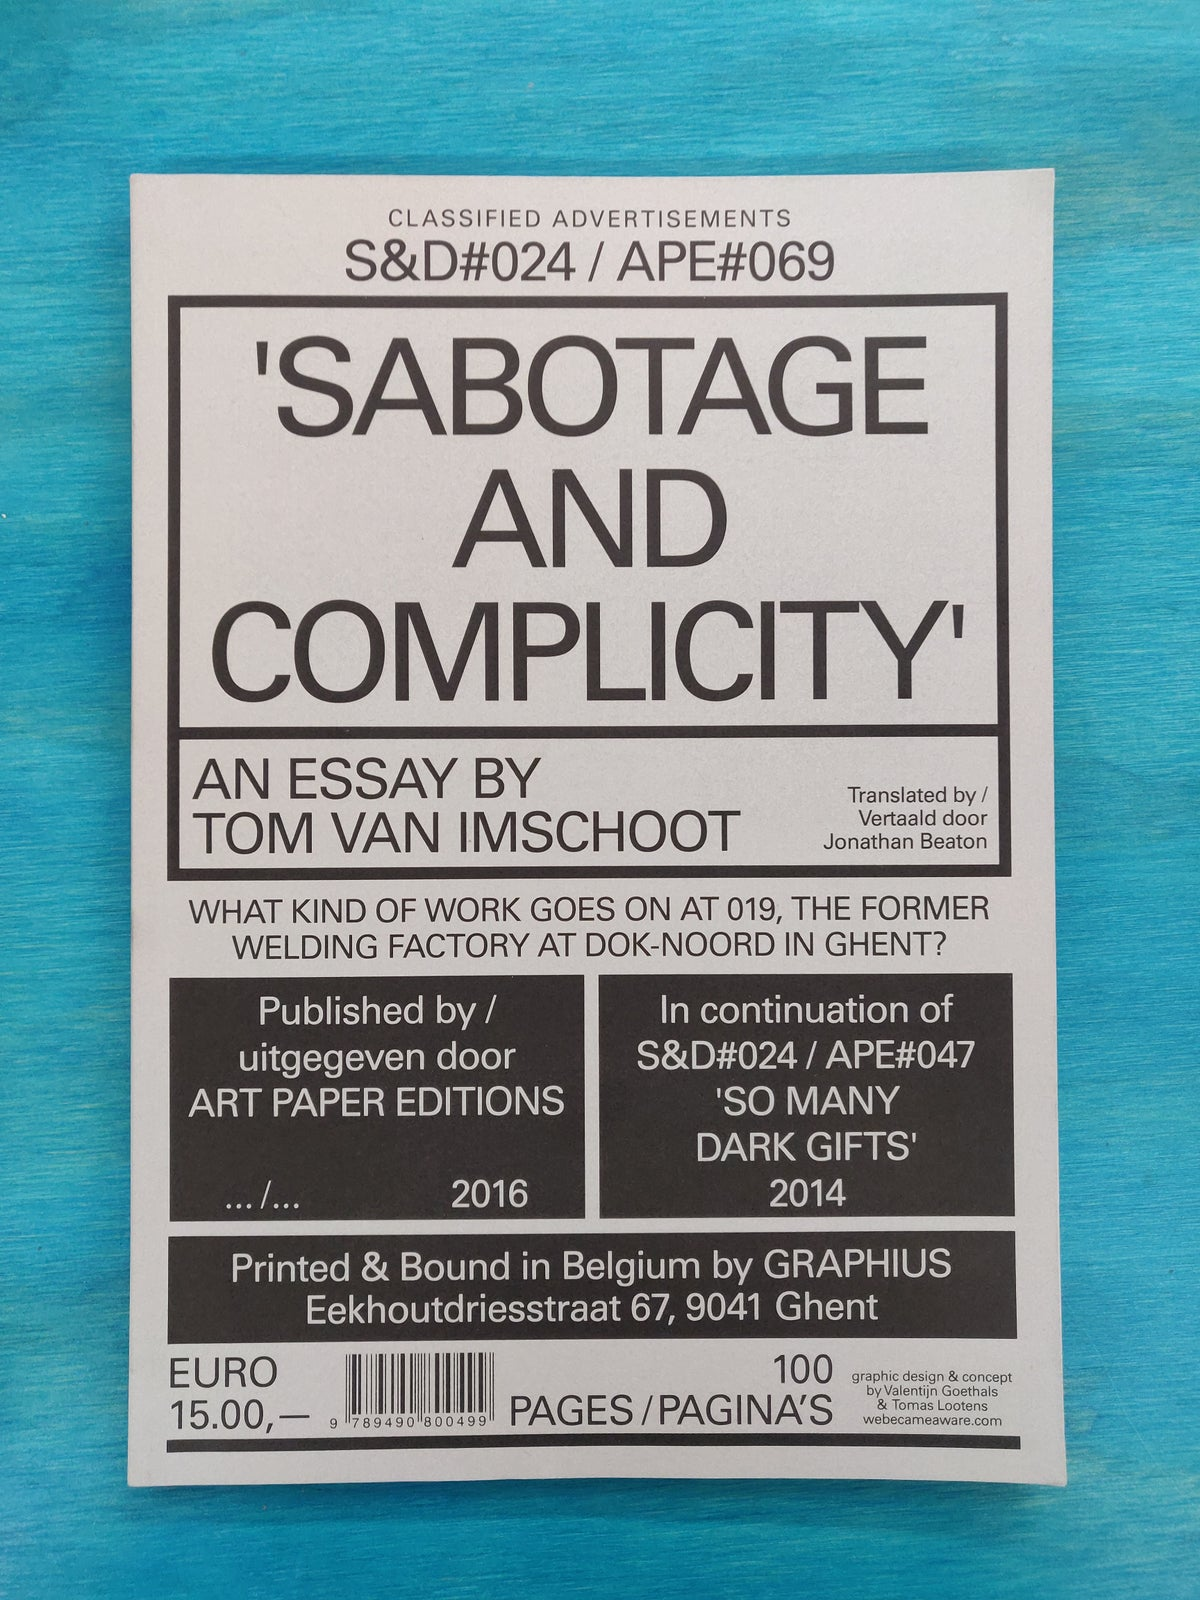 Sabotage And Complicity (S&D#024 / APE#069)